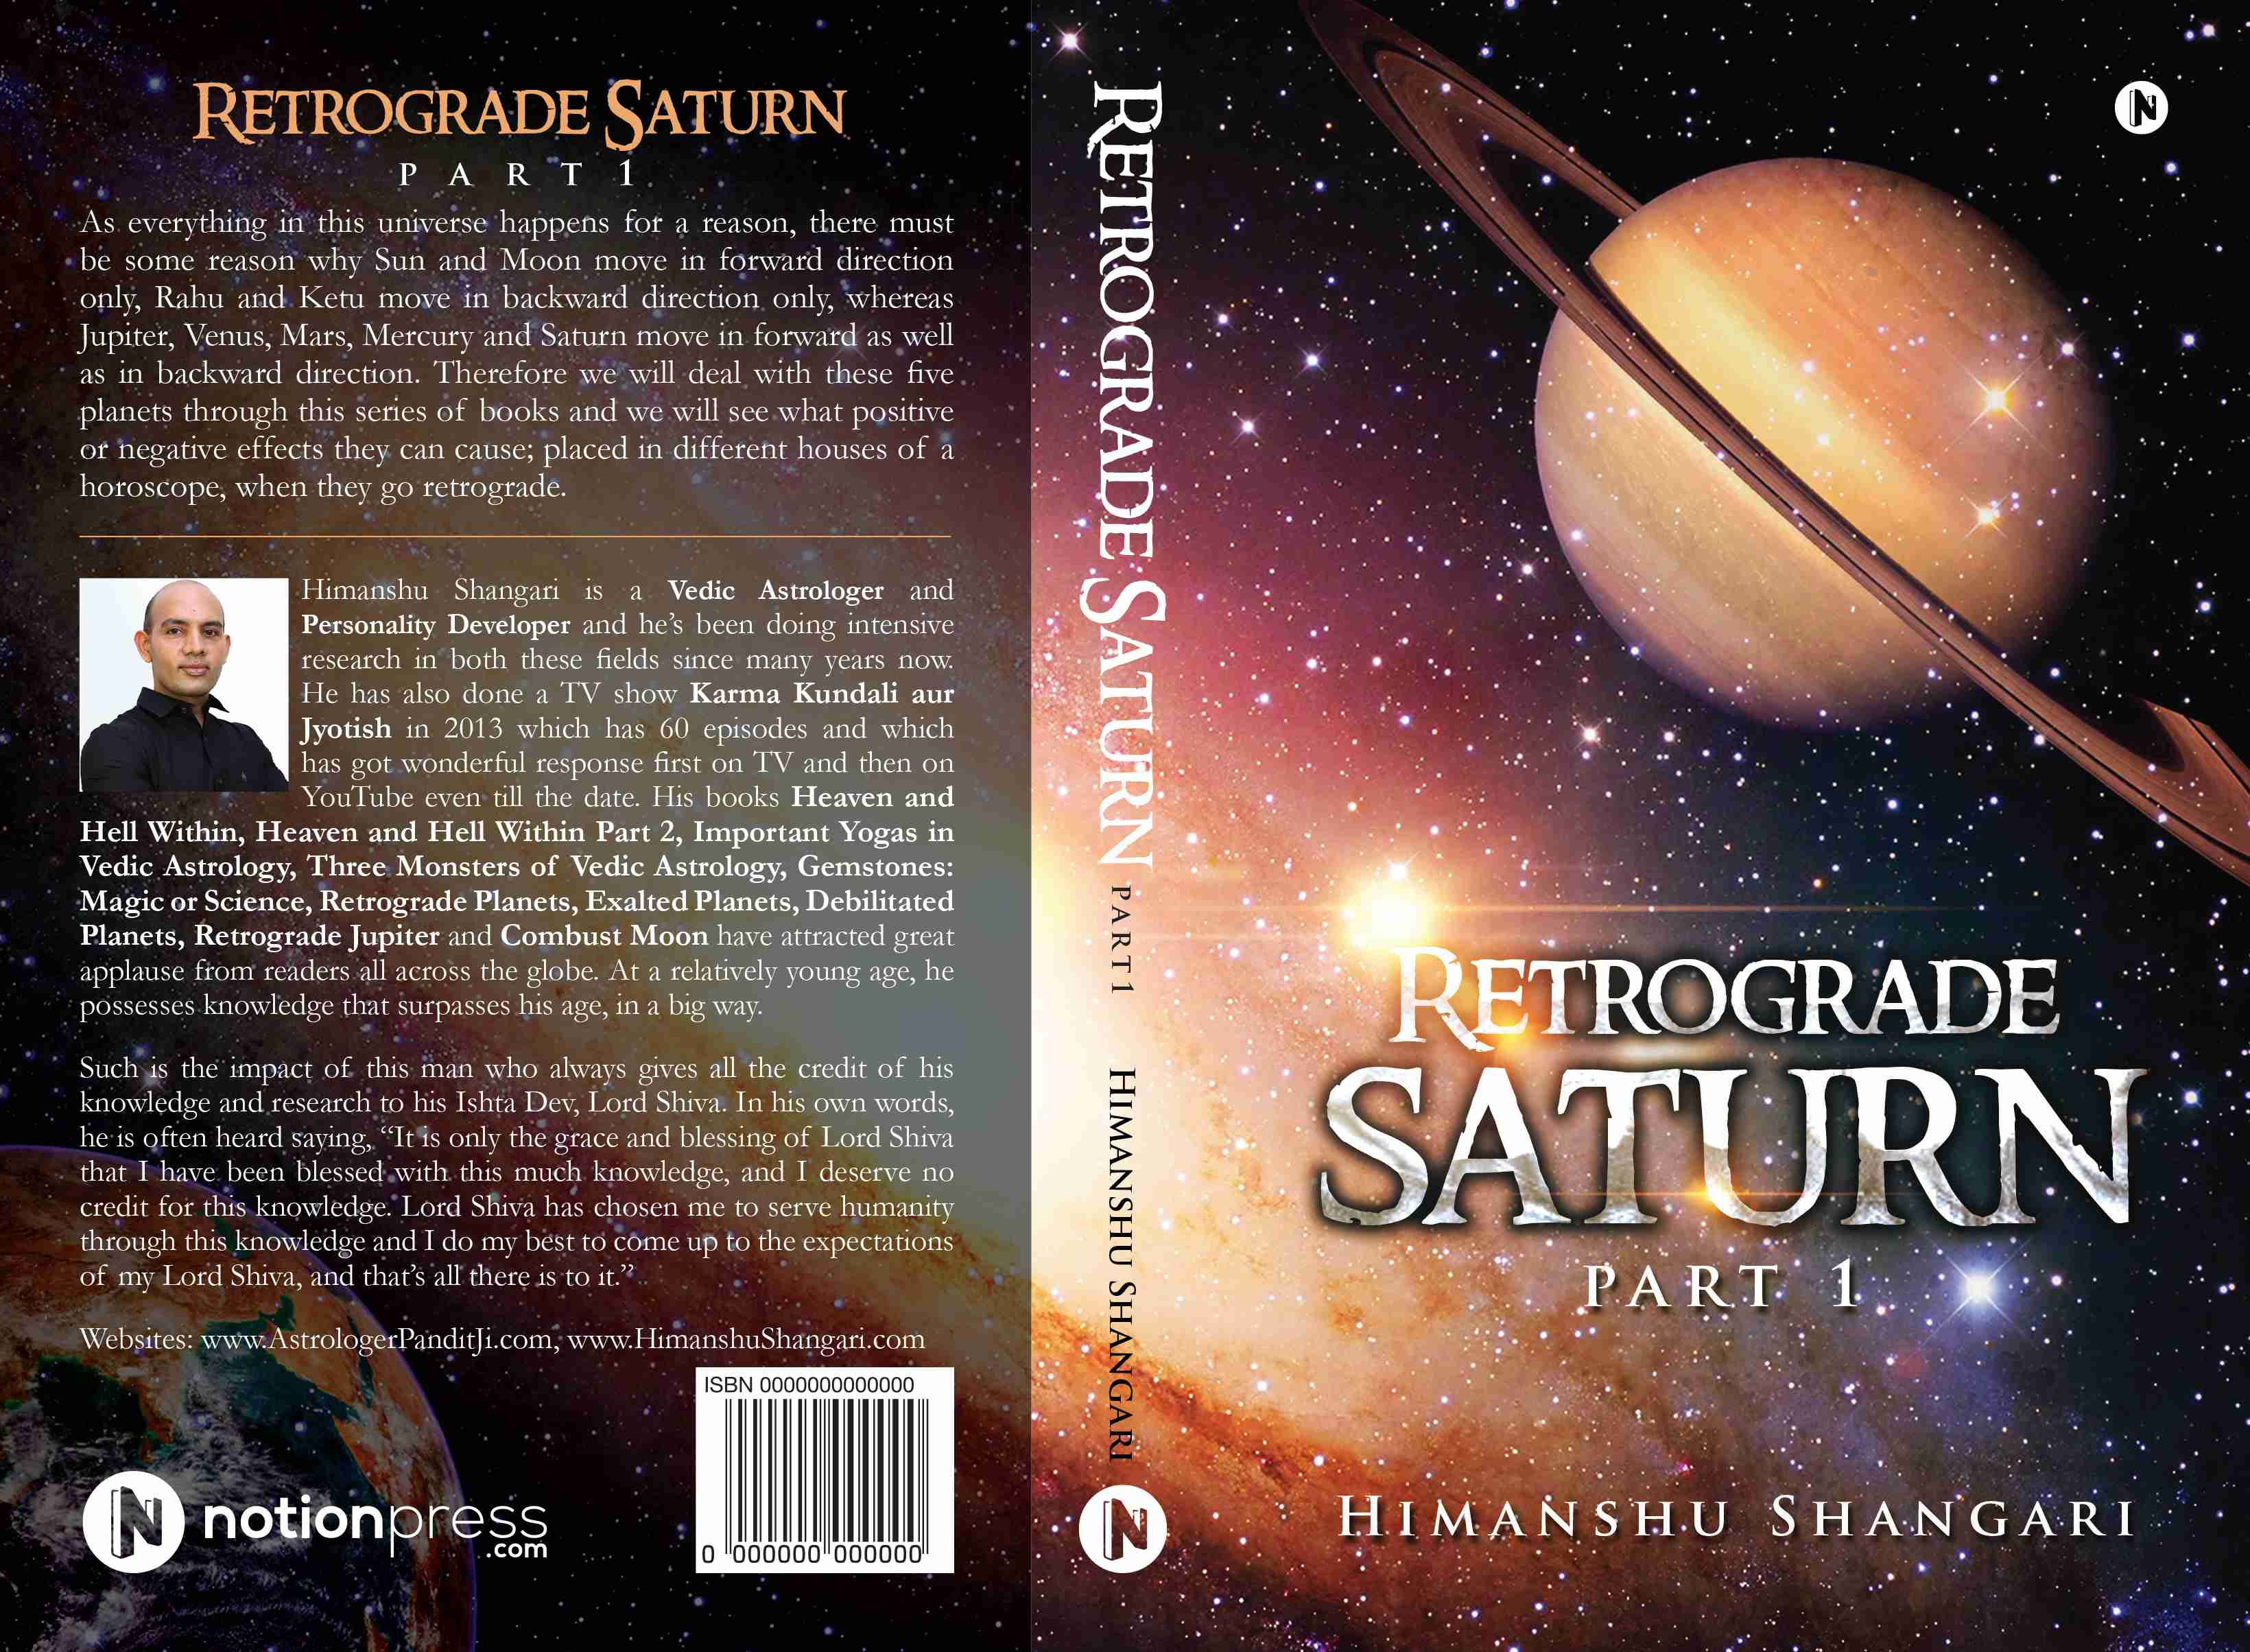 Retrograde Saturn Part 1